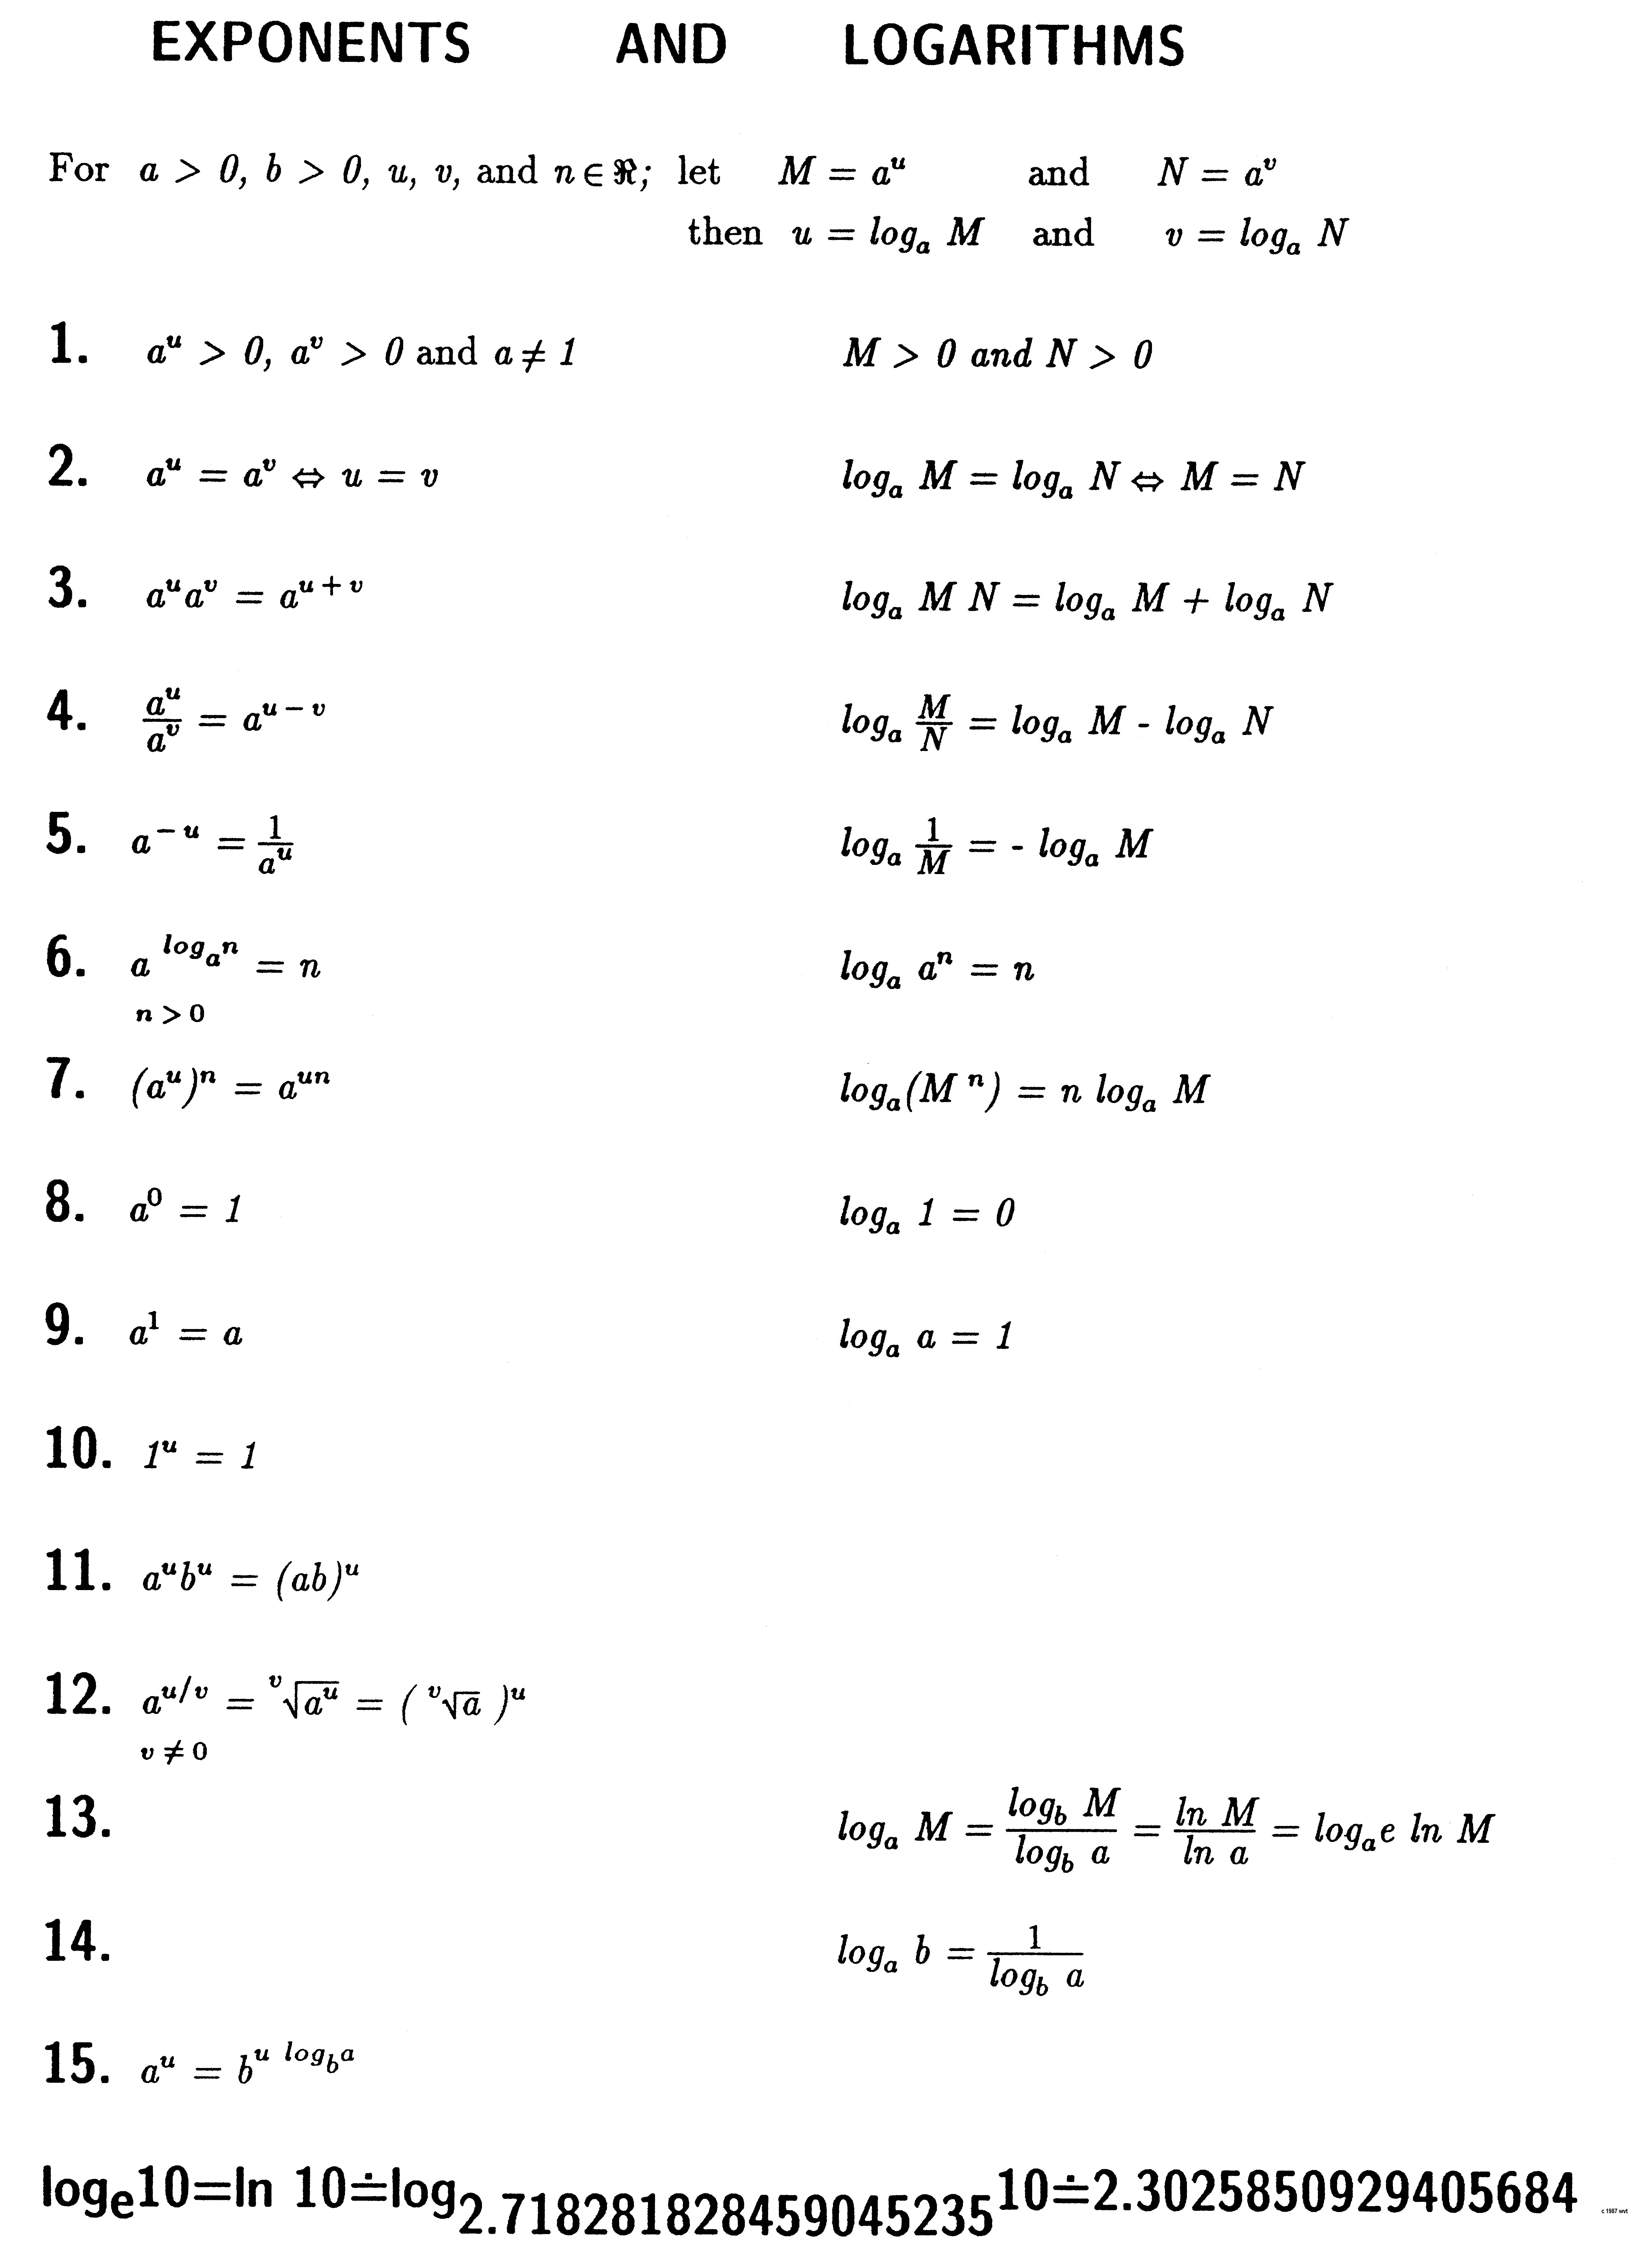 Worksheet Exponent Exercises more exercises for math courses logarithm theorems to prove with exponent rules